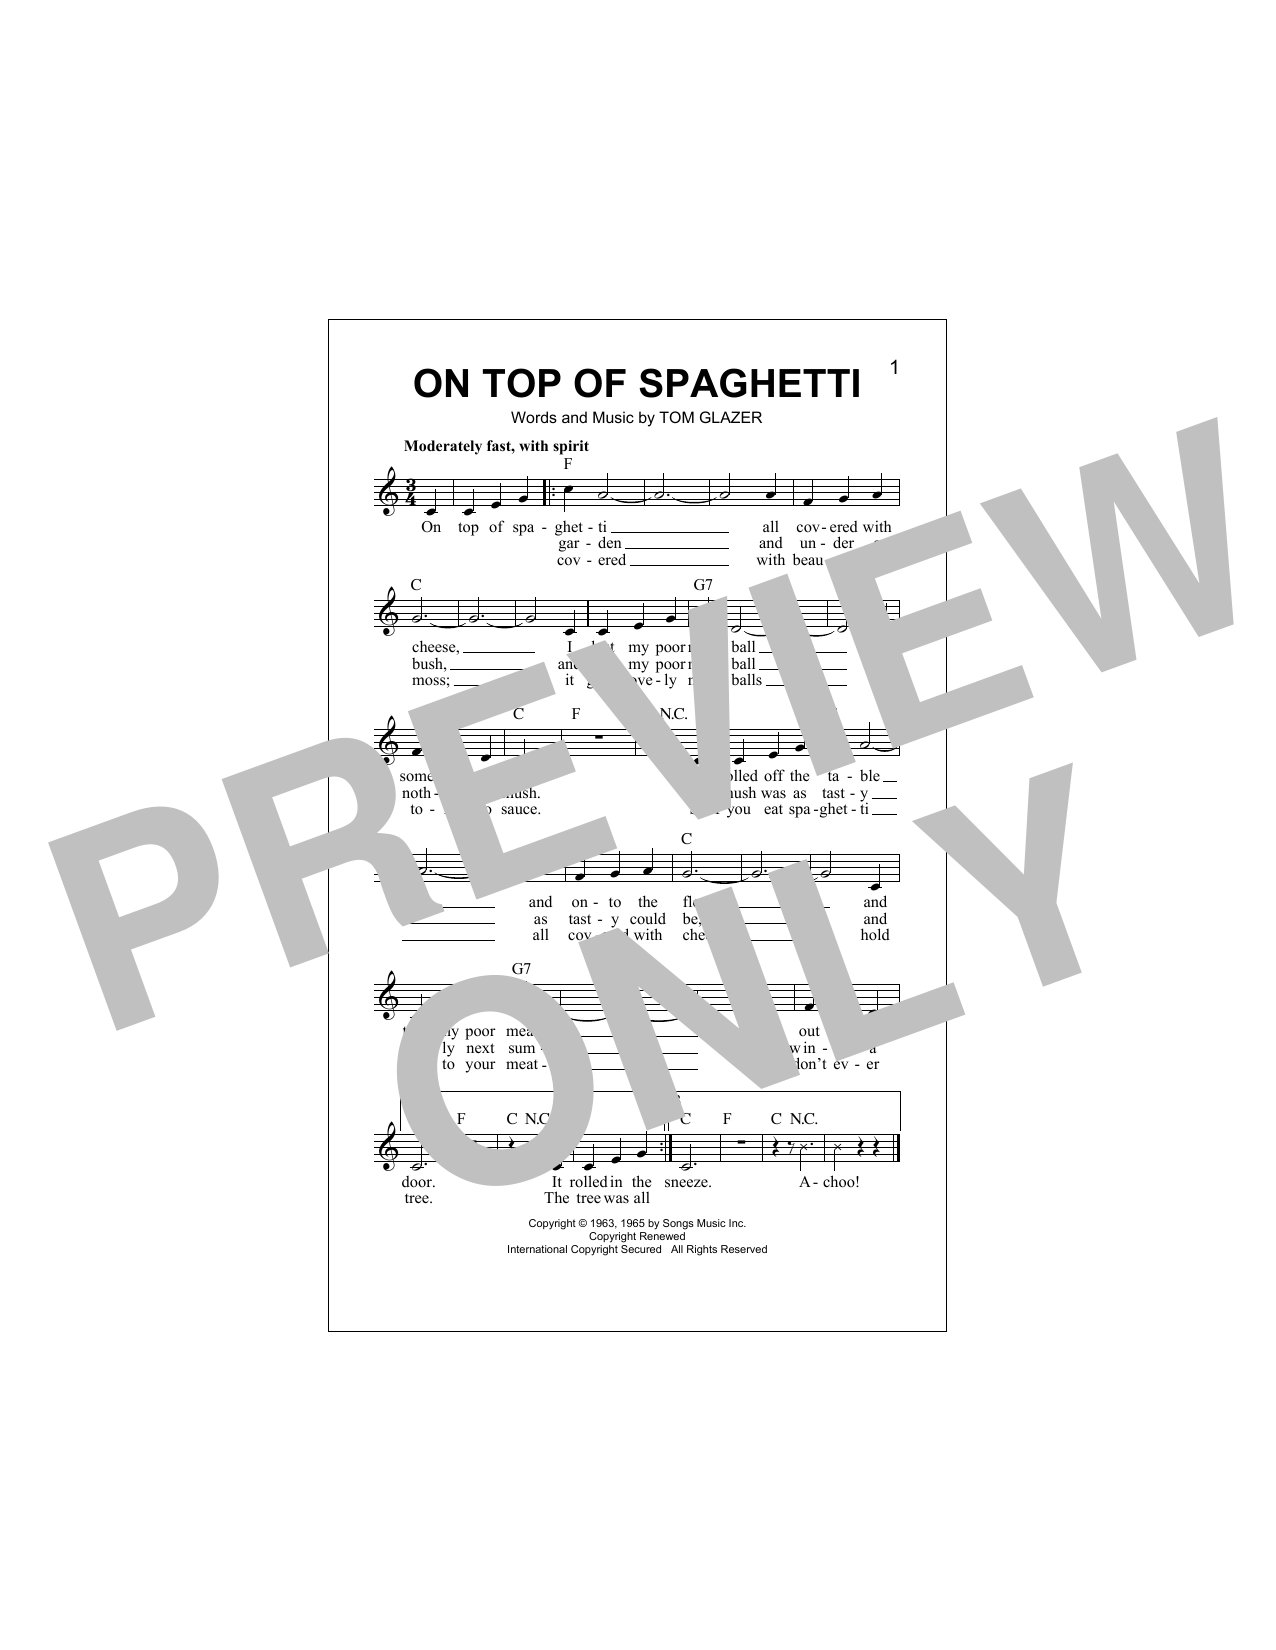 On Top Of Spaghetti Sheet Music